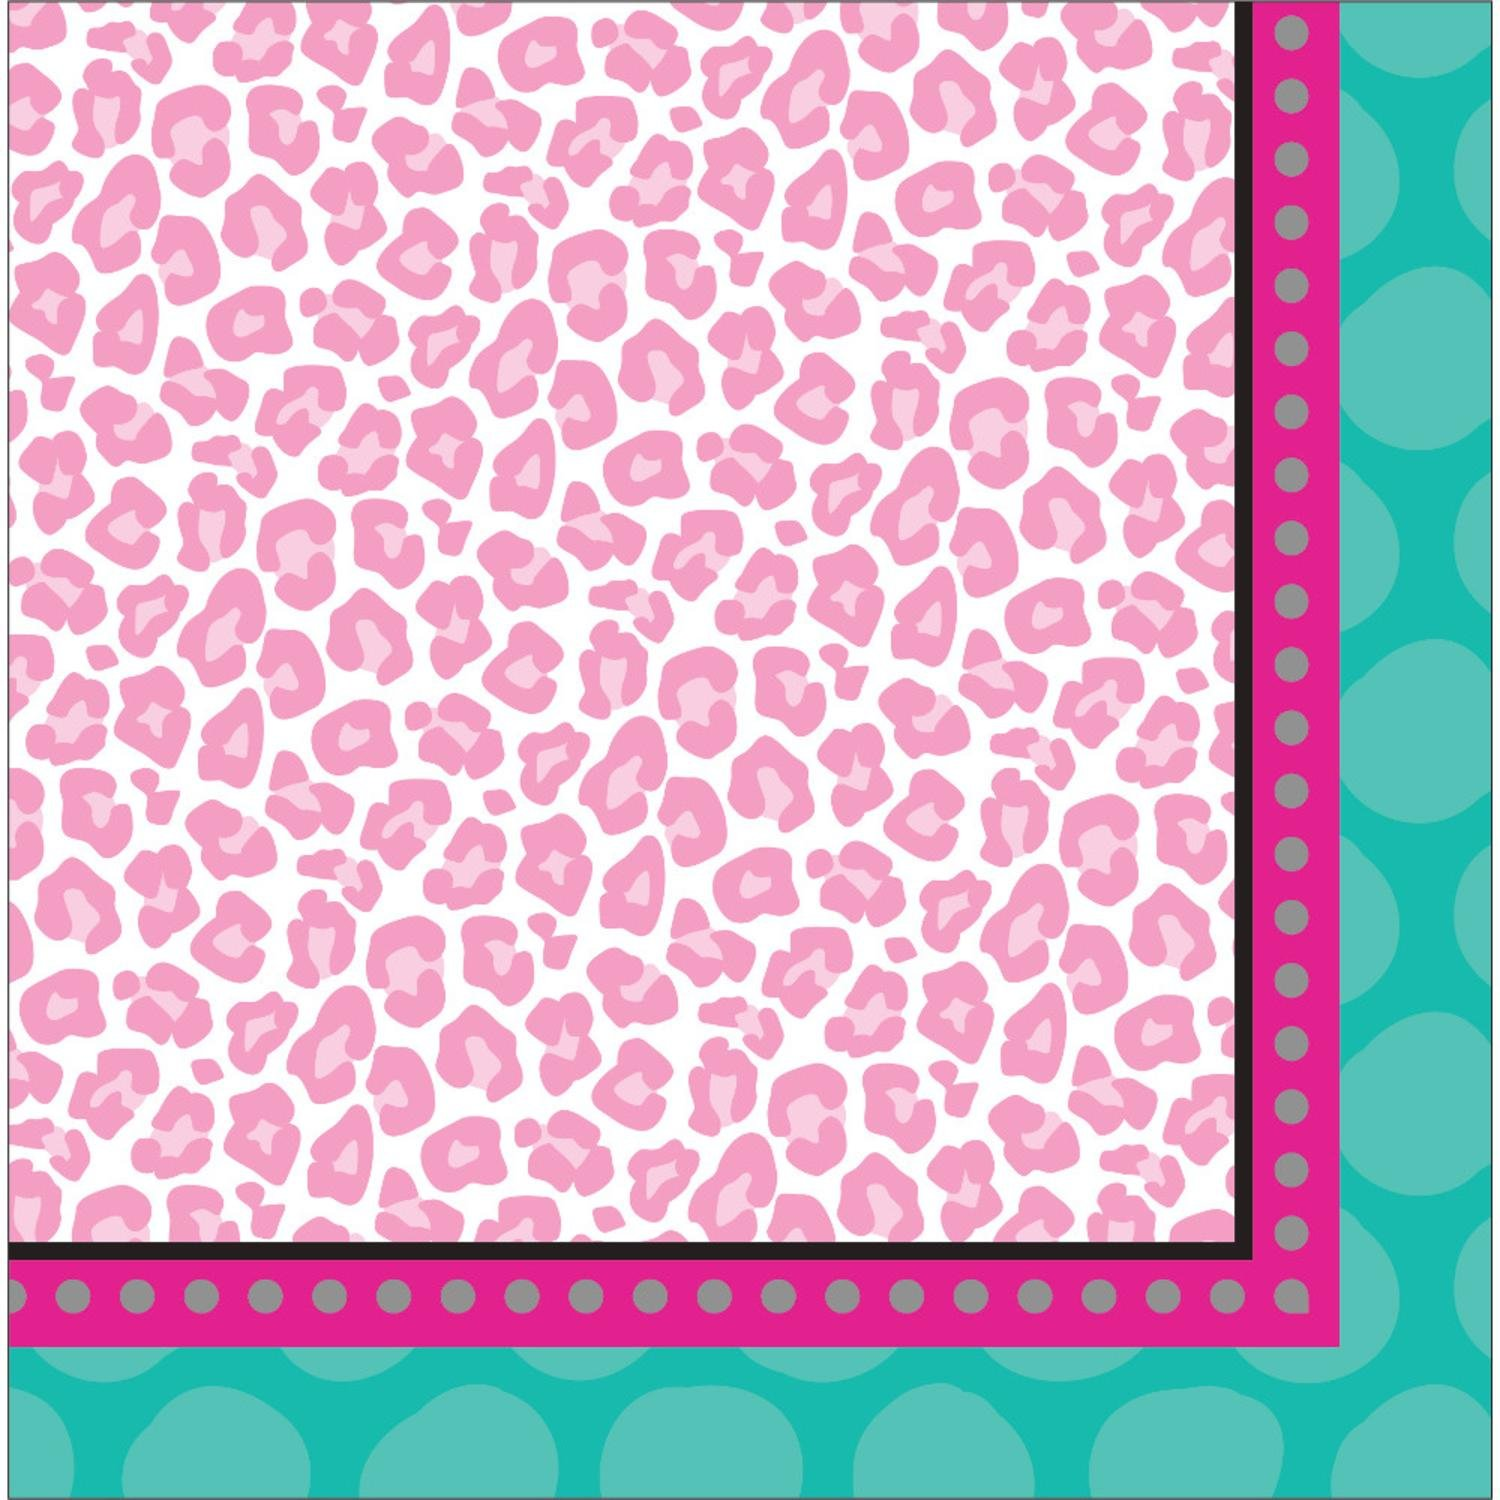 Club Pack of 192 Sparkle Spa Party! Paper Party Disposable 2-Ply Lunch Napkins 6.5''